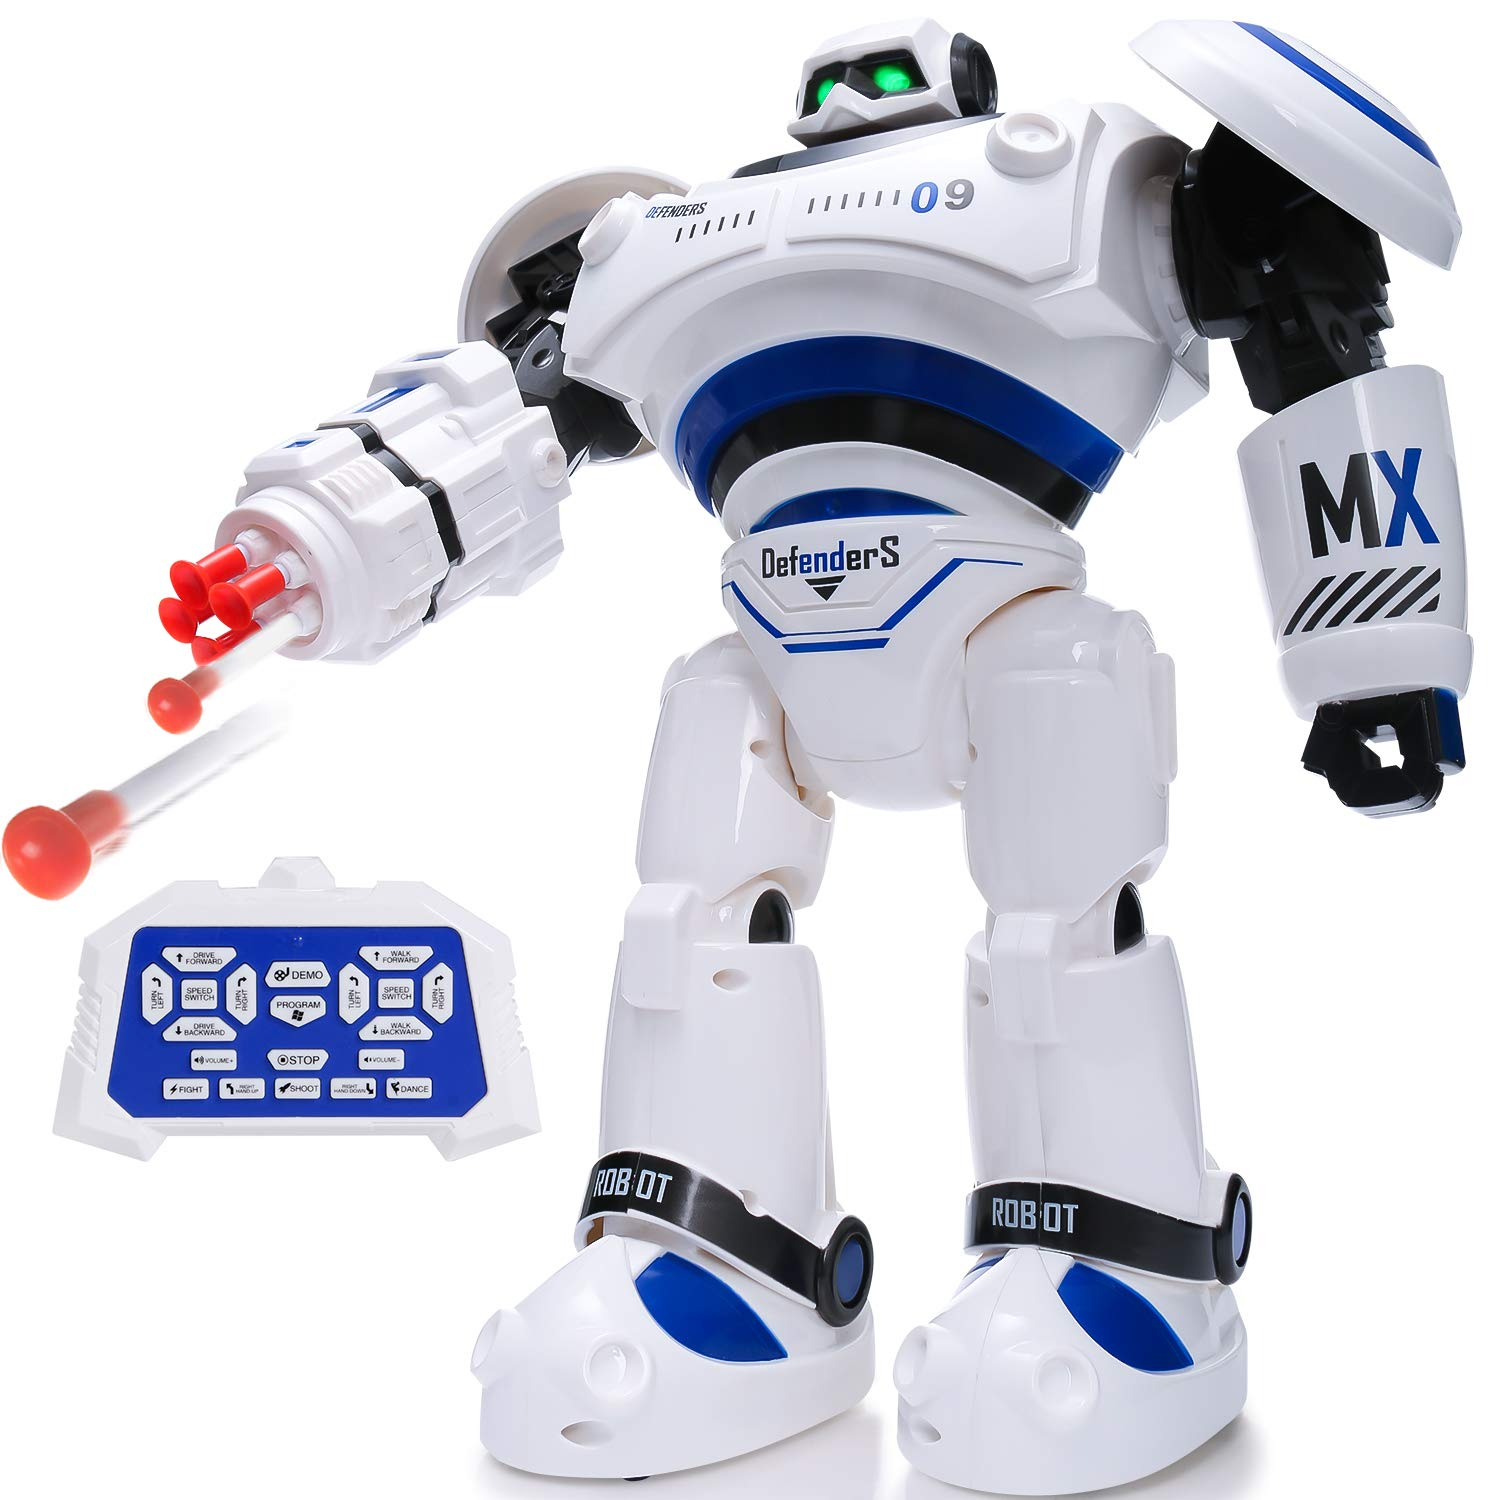 SGILE RC Robot Toy, Programmable Intelligent Walk Sing Dance Robot for Kids Gift Present, White by SGILE (Image #1)